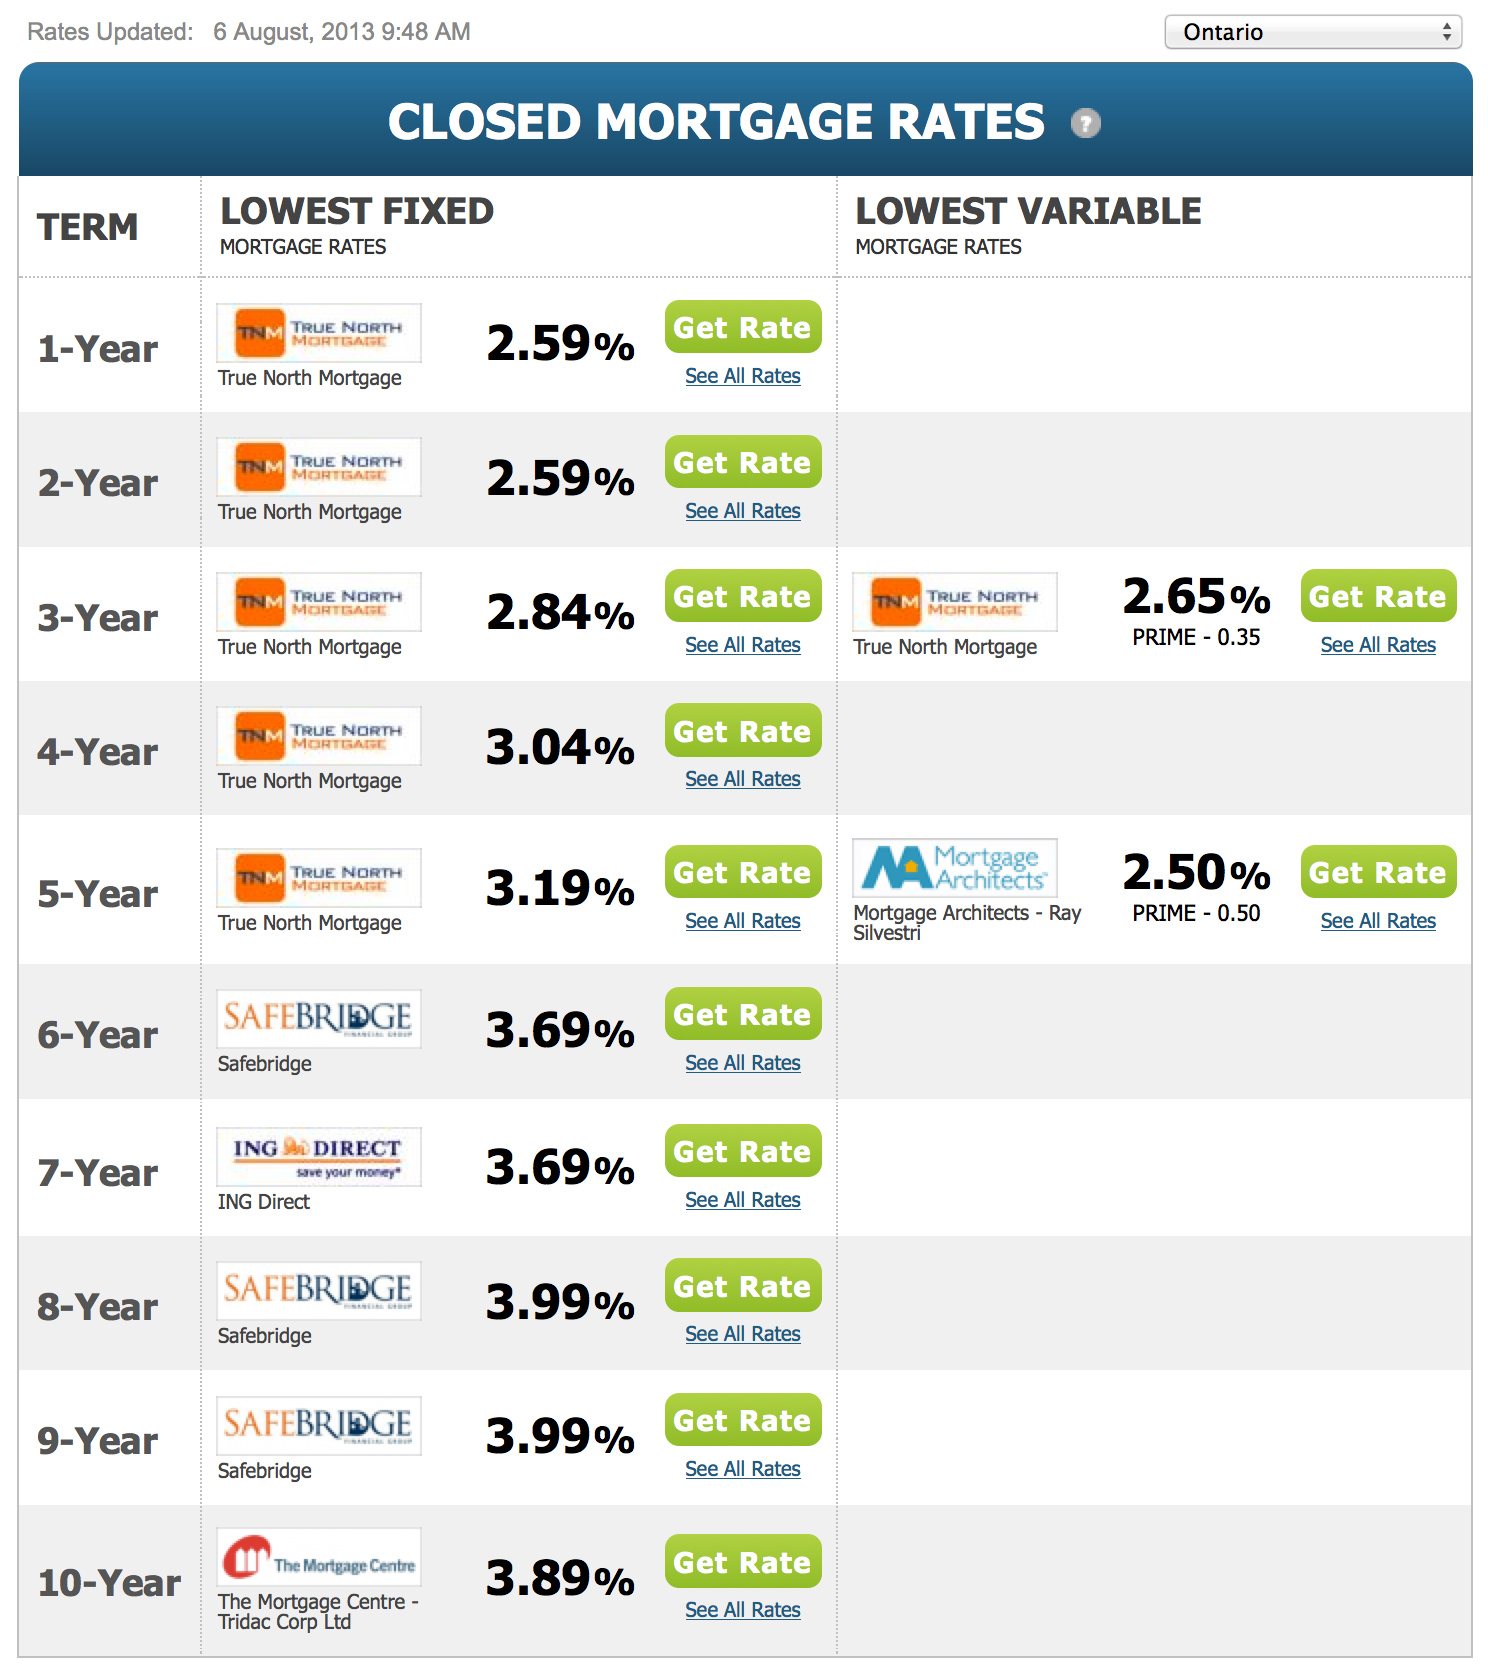 Fixed Mortgage Rates Holding Steady  Kevin & Tina Girard. Social Media Publishing Tool. Midwest Community Federal Credit Union. Medicare Supplemental Insurance Georgia. Pell Grant For Single Mothers. Car Insurance Prices For 18 Year Olds. Fathers Rights In Custody Battles. Leisure Industry Statistics Bsn Without Rn. Trucking Companies Utah Mjr Southgate Theater